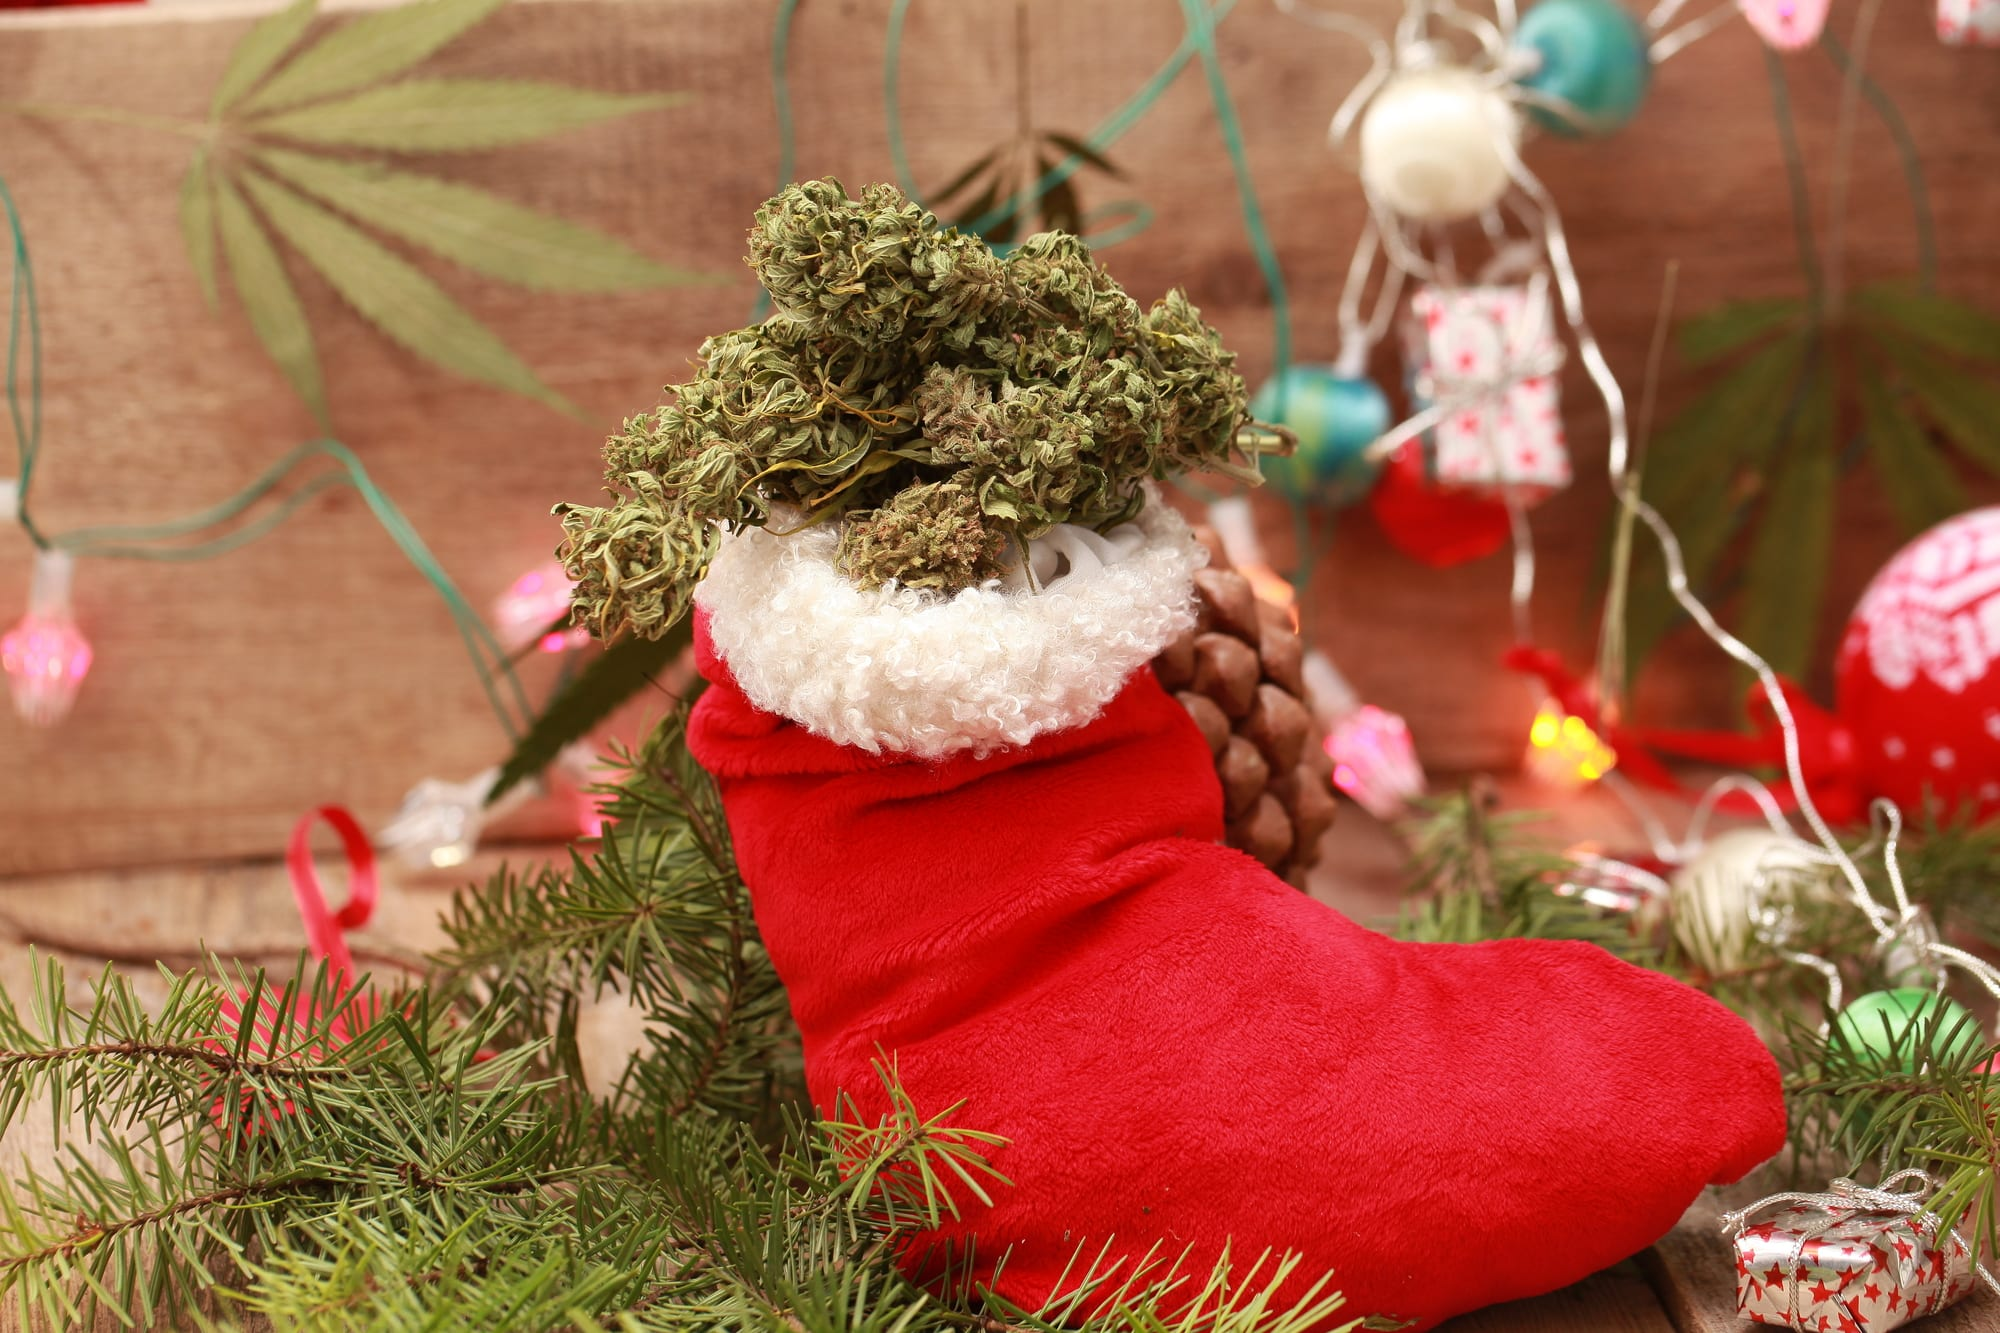 Cannabis 2.0 products blast off shelves in holiday release blitz